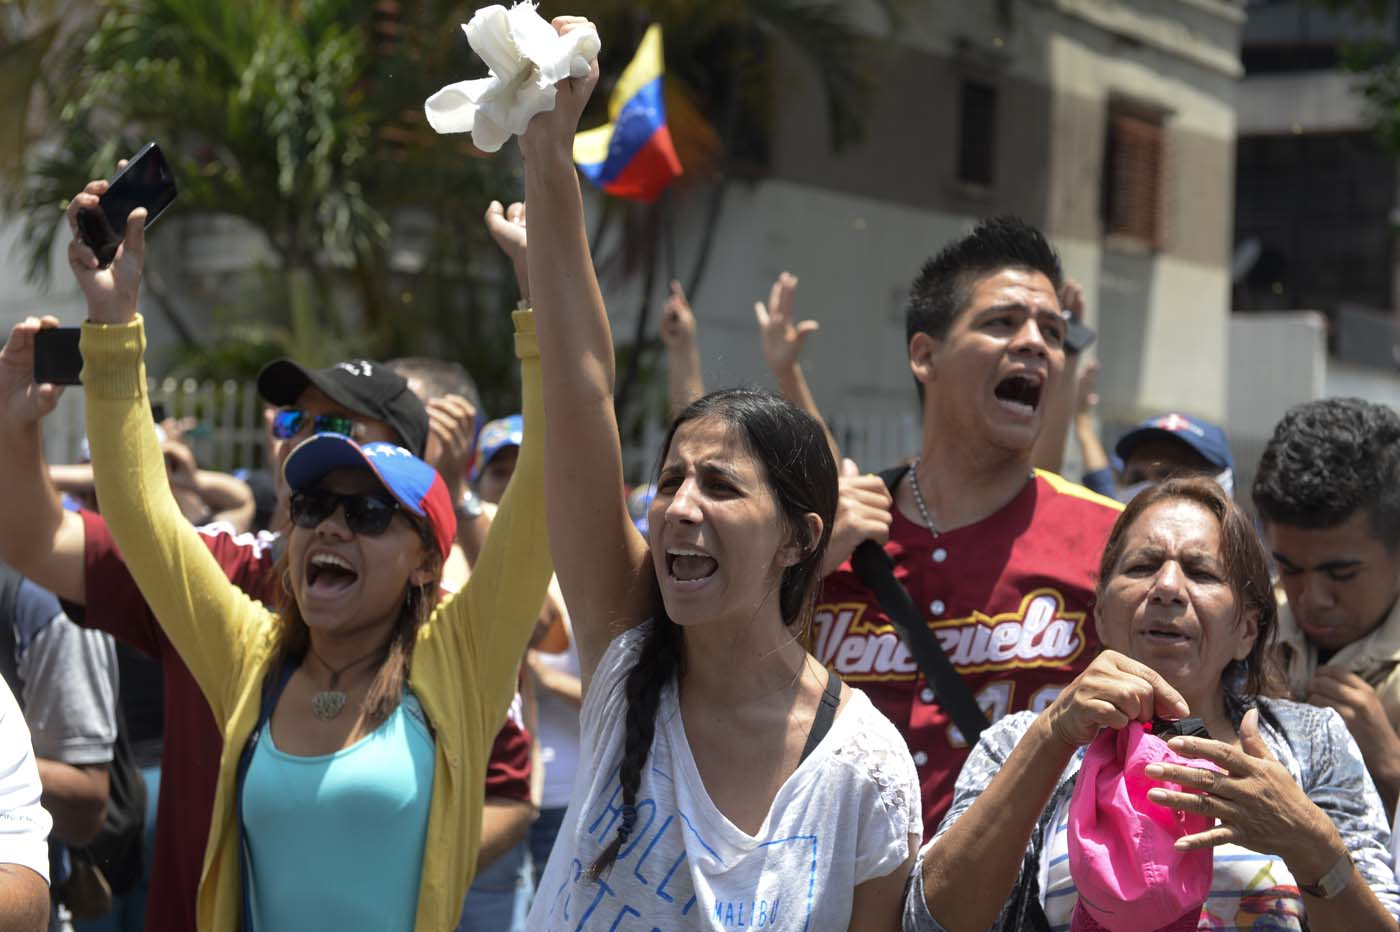 Demonstrators march against Venezuelan President Nicolas Maduro, in Caracas on April 20, 2017. Venezuelan riot police fired tear gas Thursday at groups of protesters seeking to oust President Nicolas Maduro, who have vowed new mass marches after a day of deadly unrest. Police in western Caracas broke up scores of opposition protesters trying to join a larger march, though there was no immediate repeat of Wednesday's violent clashes, which left three people dead. / AFP PHOTO / Federico PARRA